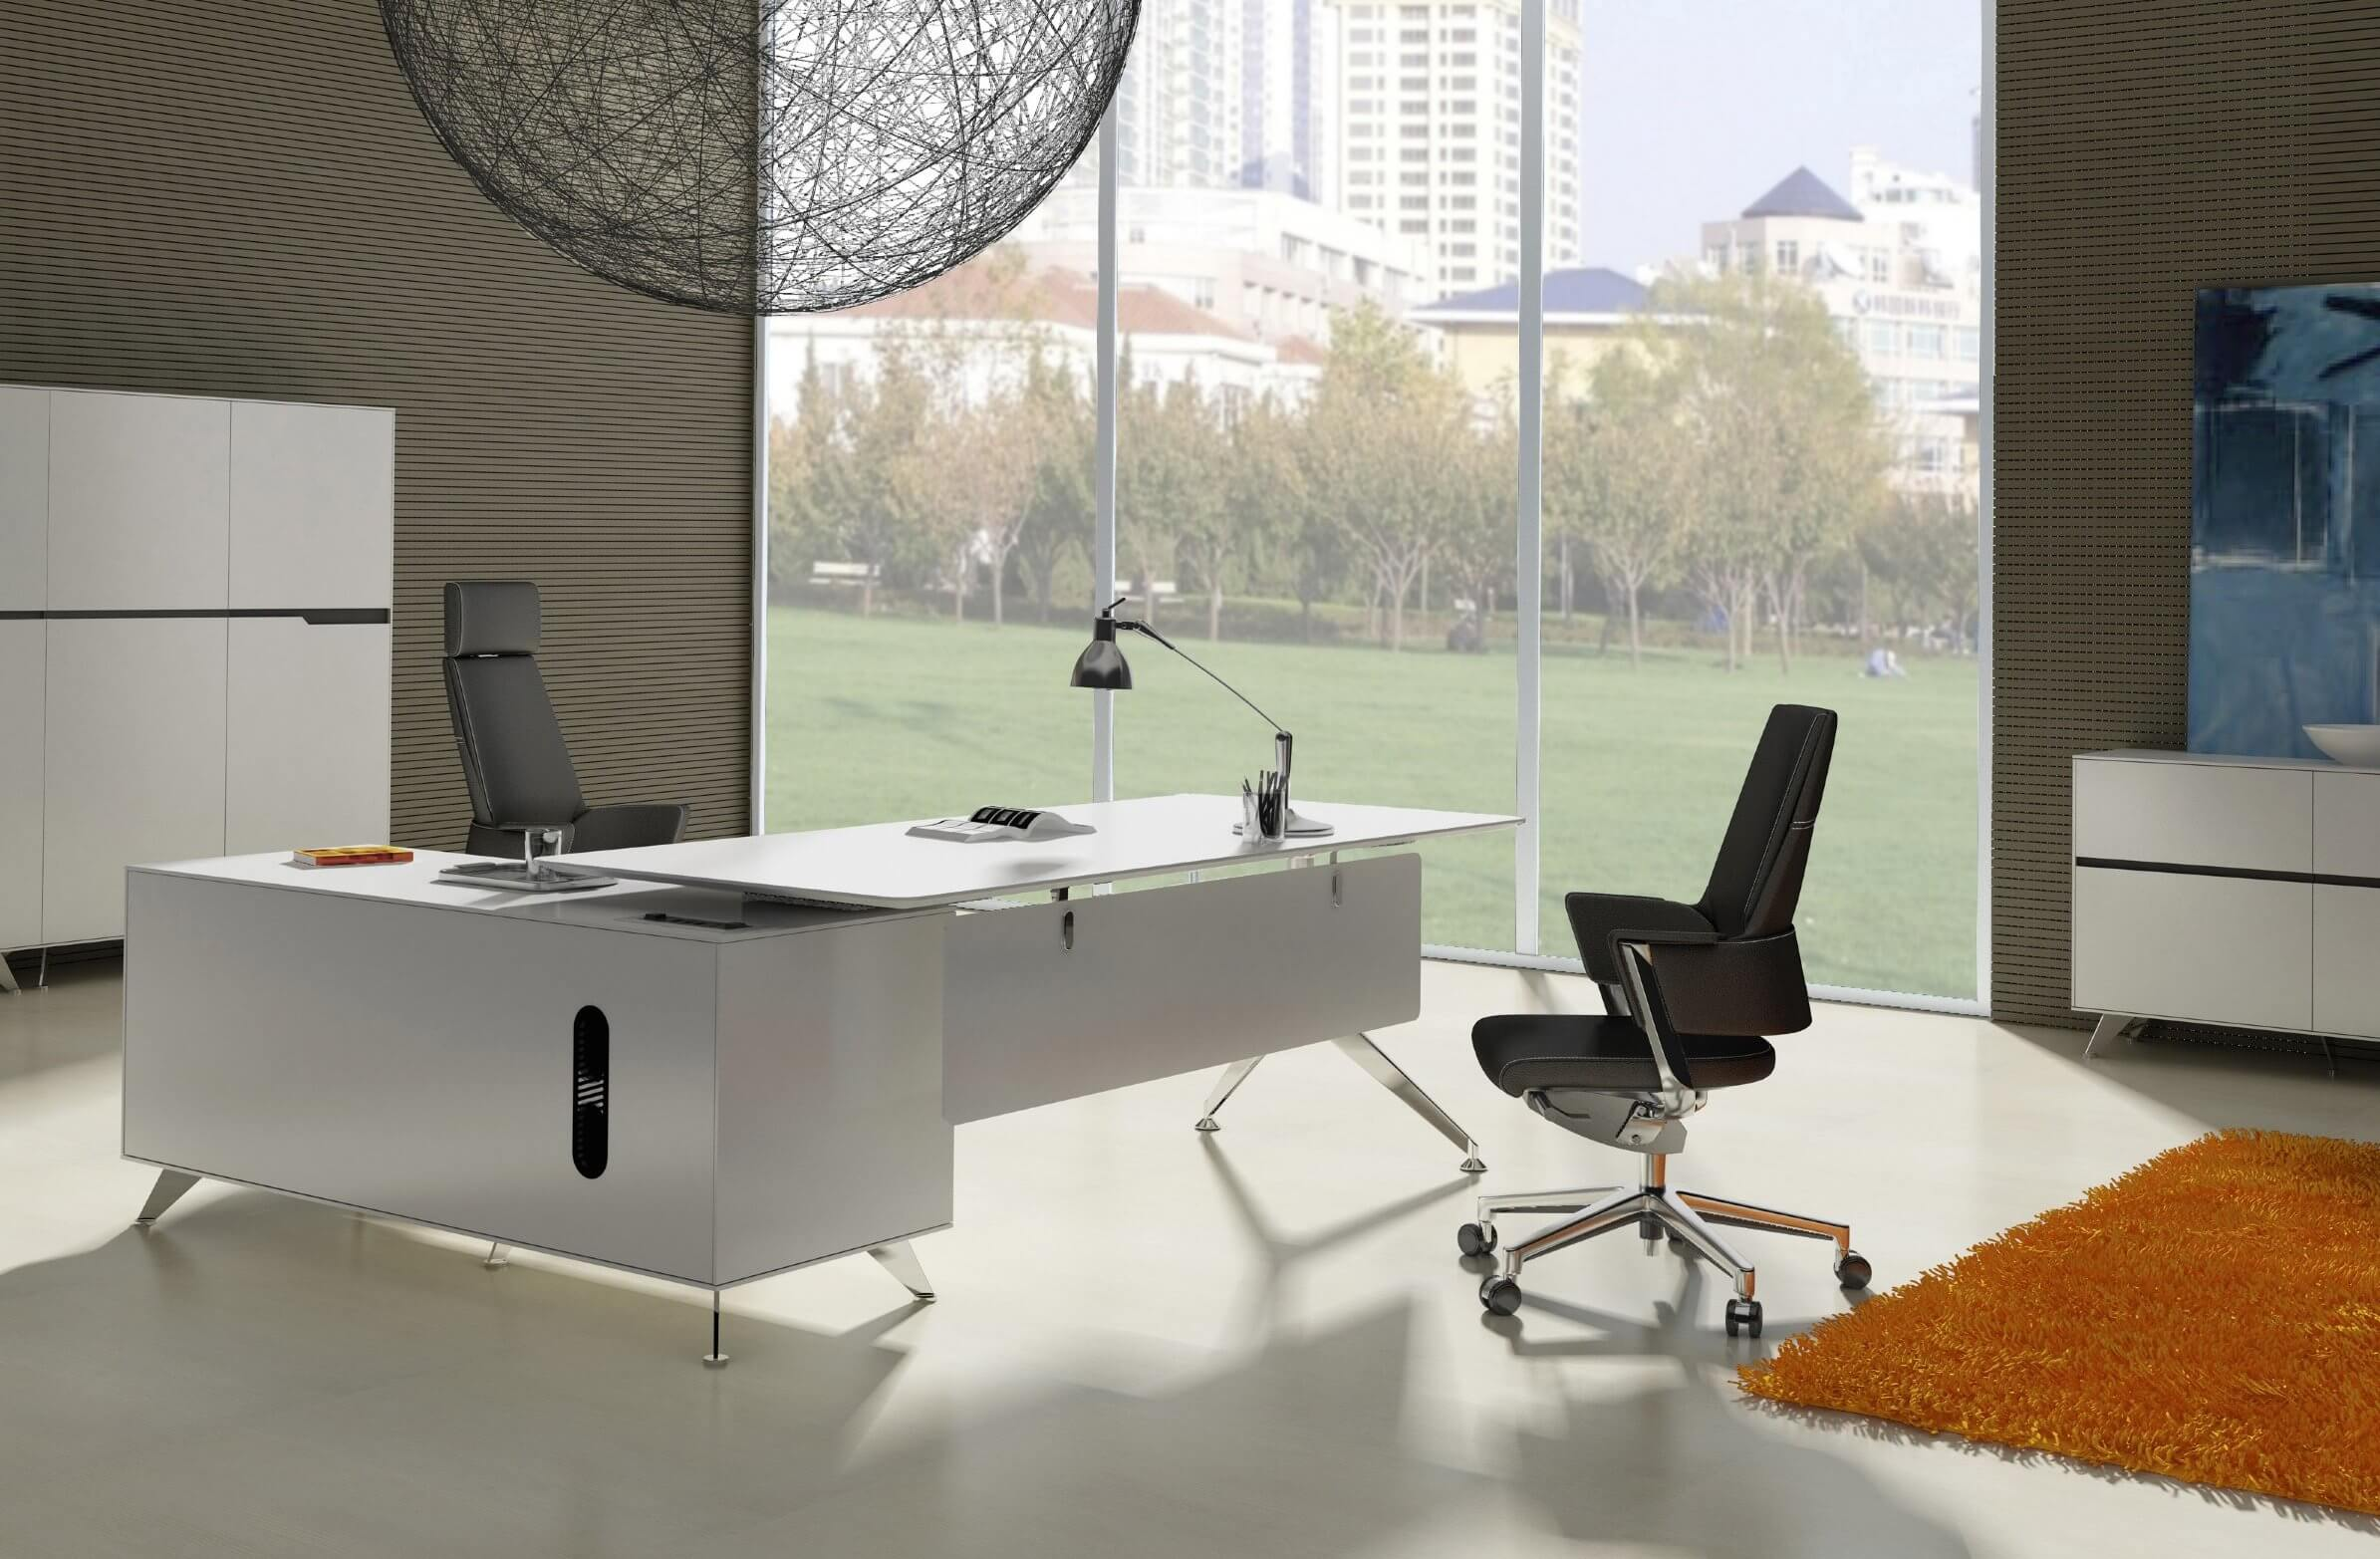 gallery choosing office cabinets white silver modern lshaped white desk 17 different types of desks 2018 desk buying guide